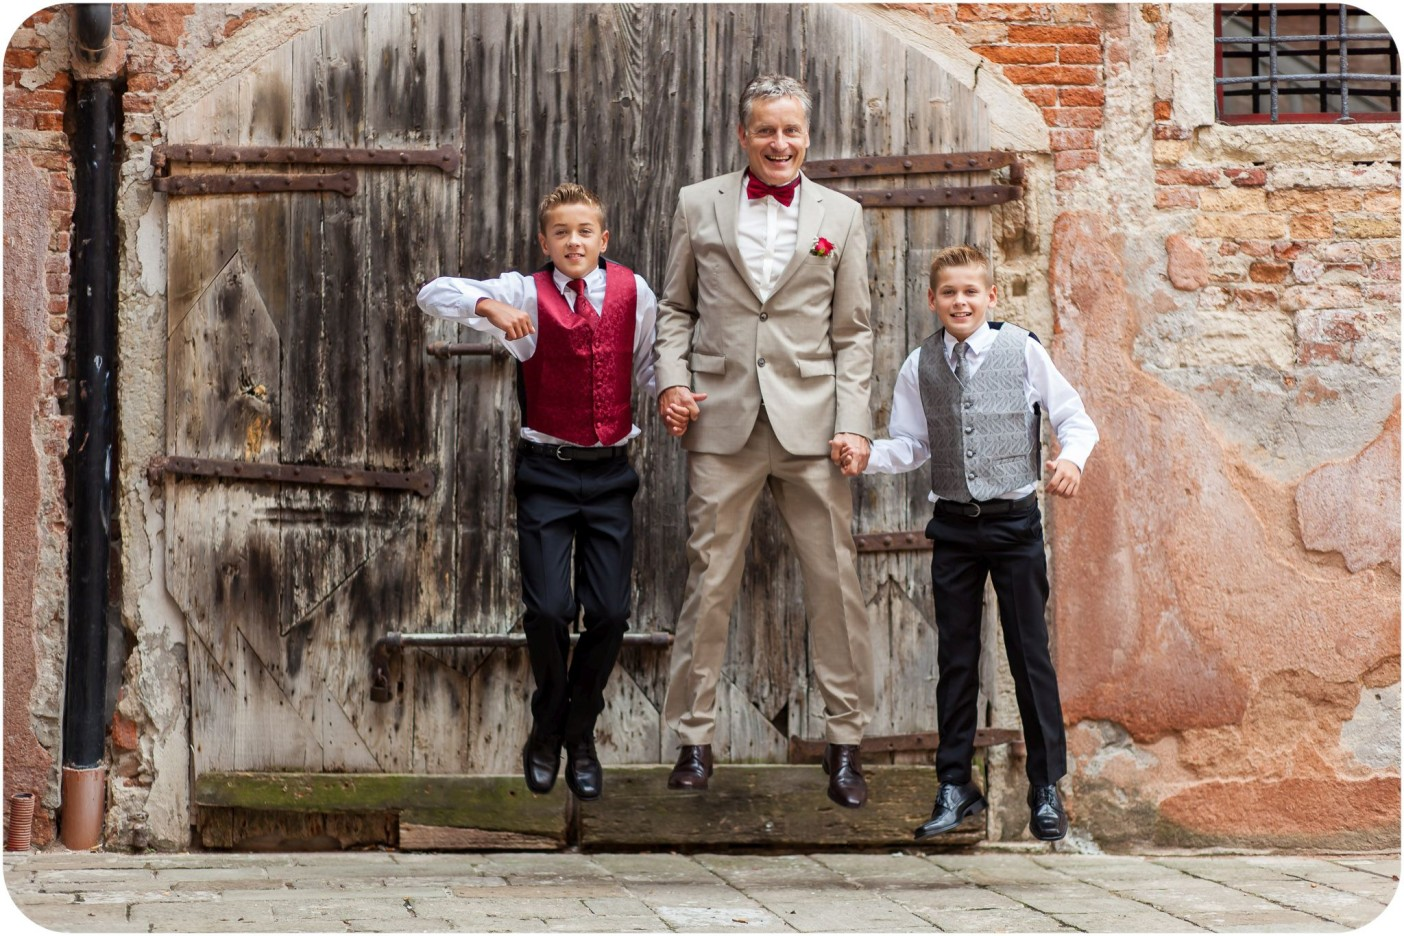 groom jump with children during wedding photo session in Venice